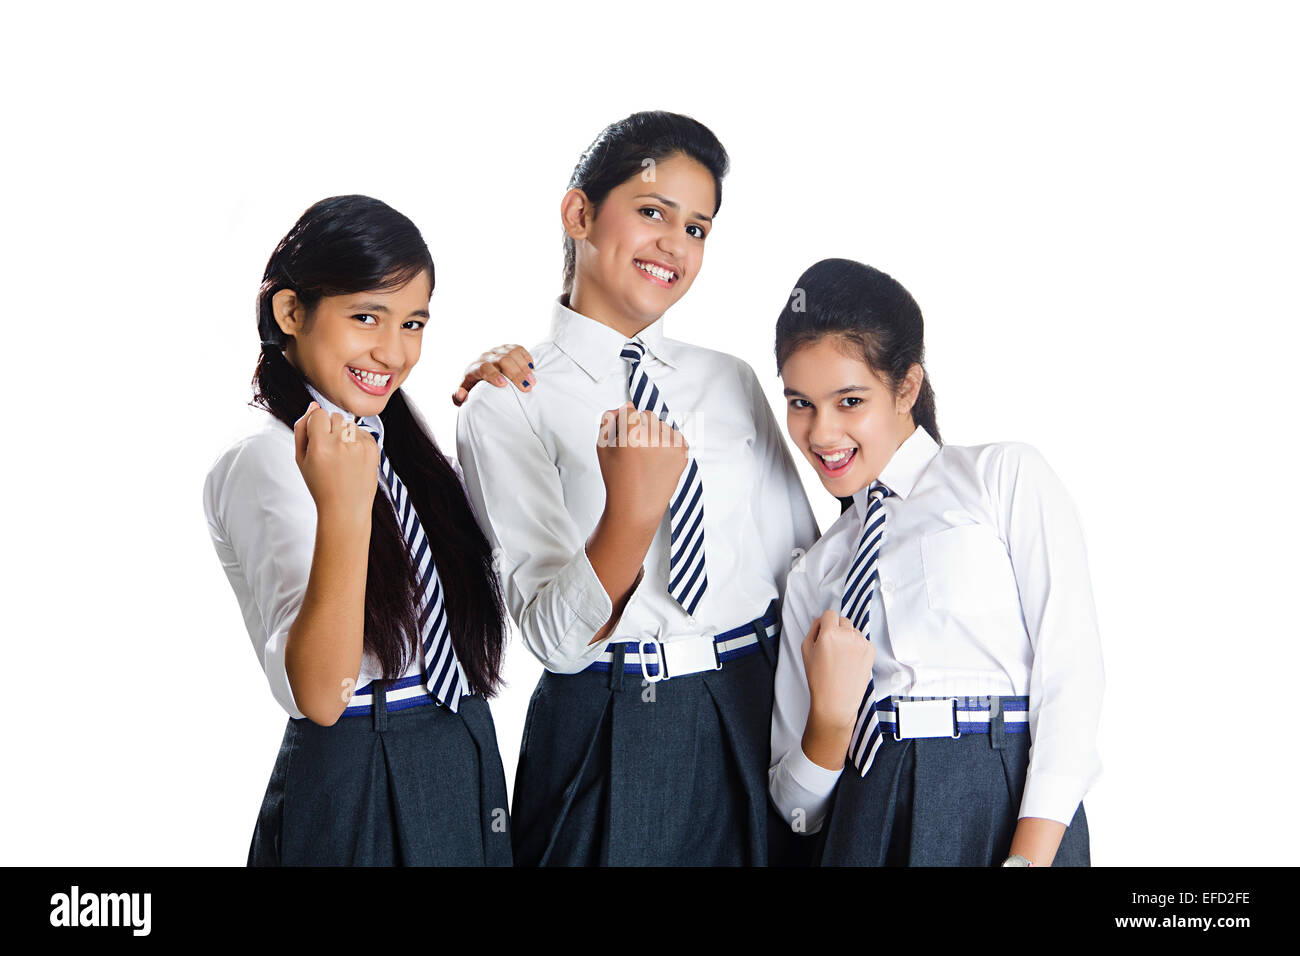 Remarkable, rather Indian school girl fun